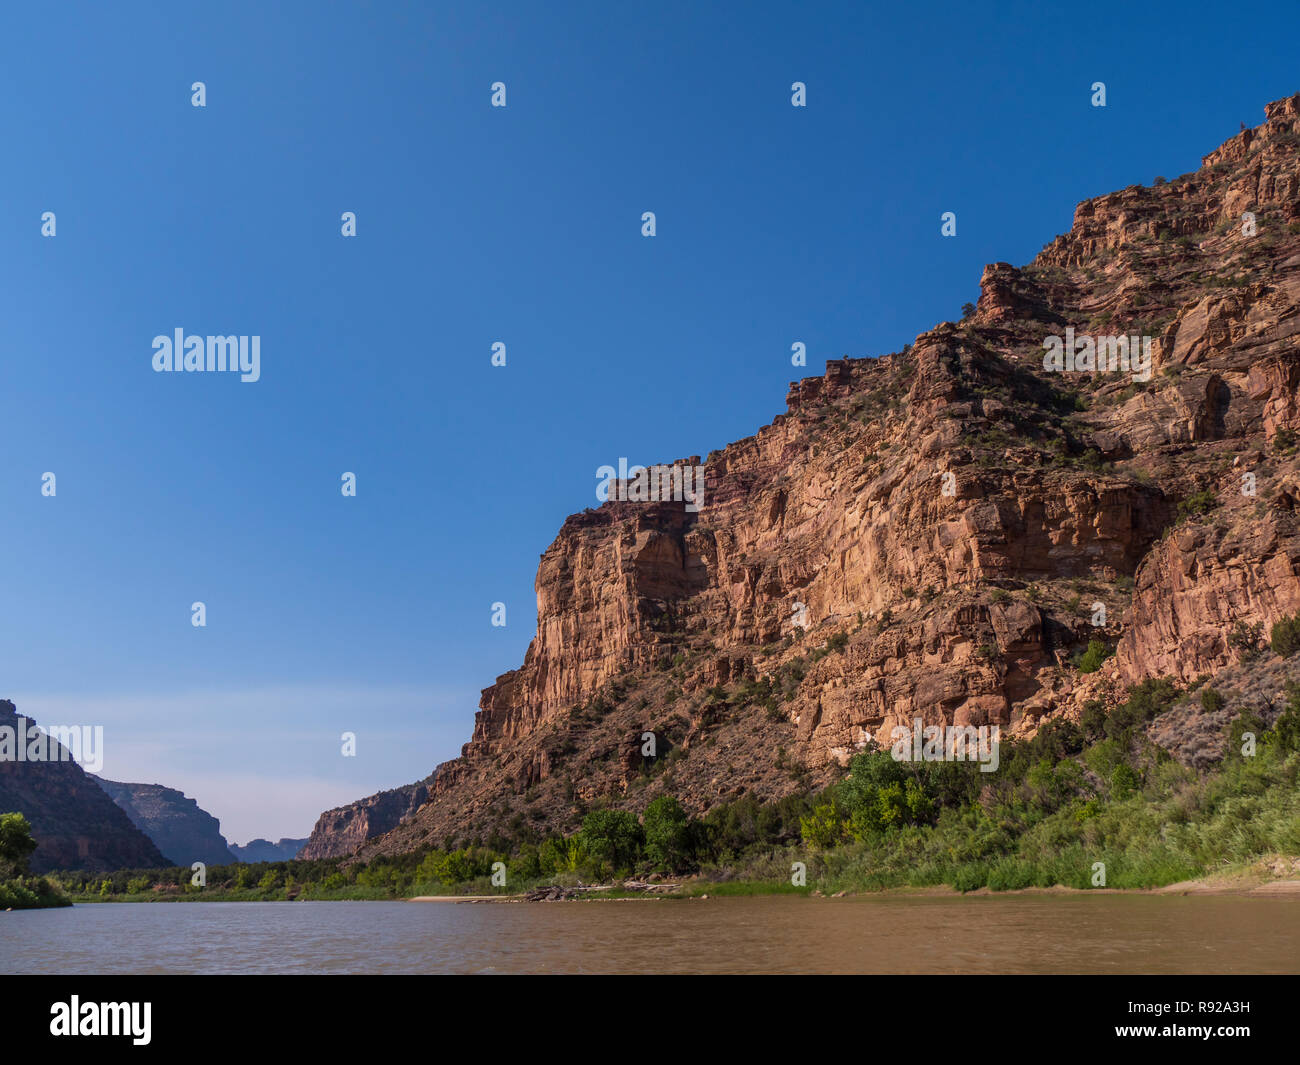 Cliffs along the river, lower Desolation Canyon north of Green River, Utah. - Stock Image